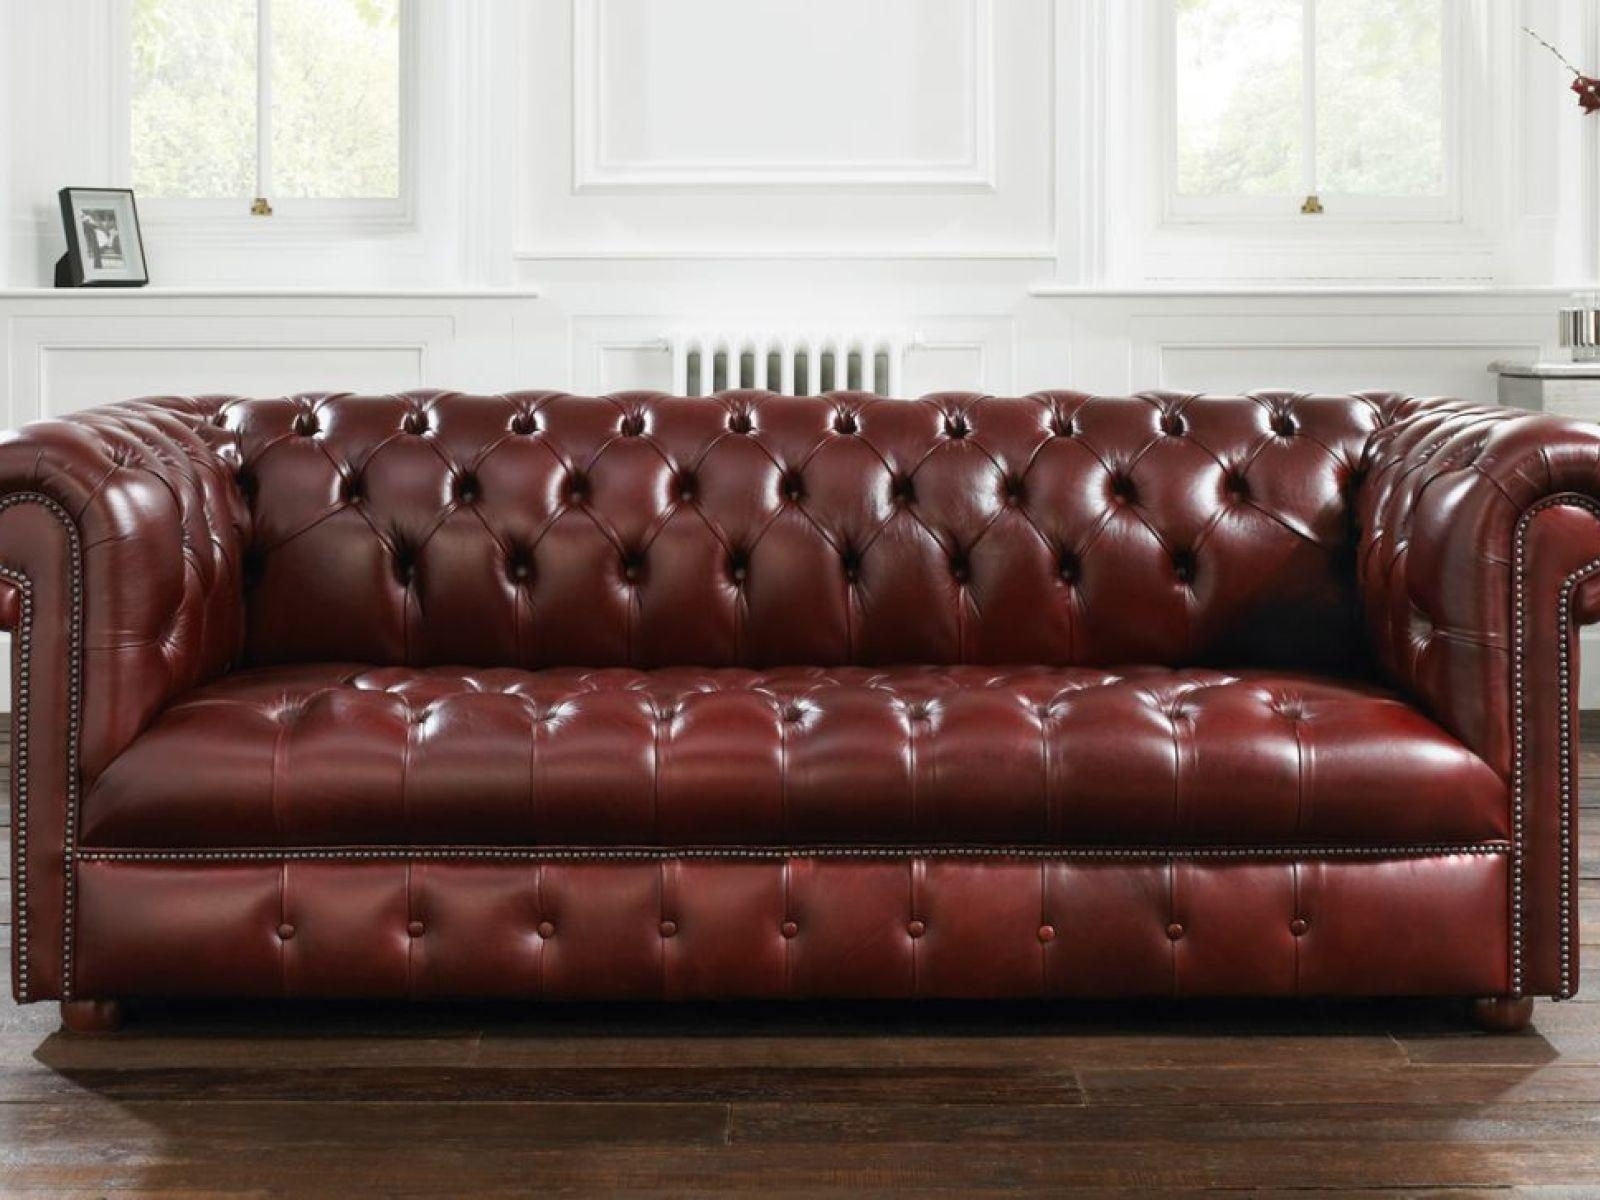 Sofas : Magnificent Blue Chesterfield Sofa Black Leather Tufted With Chesterfield Black Sofas (Image 18 of 20)